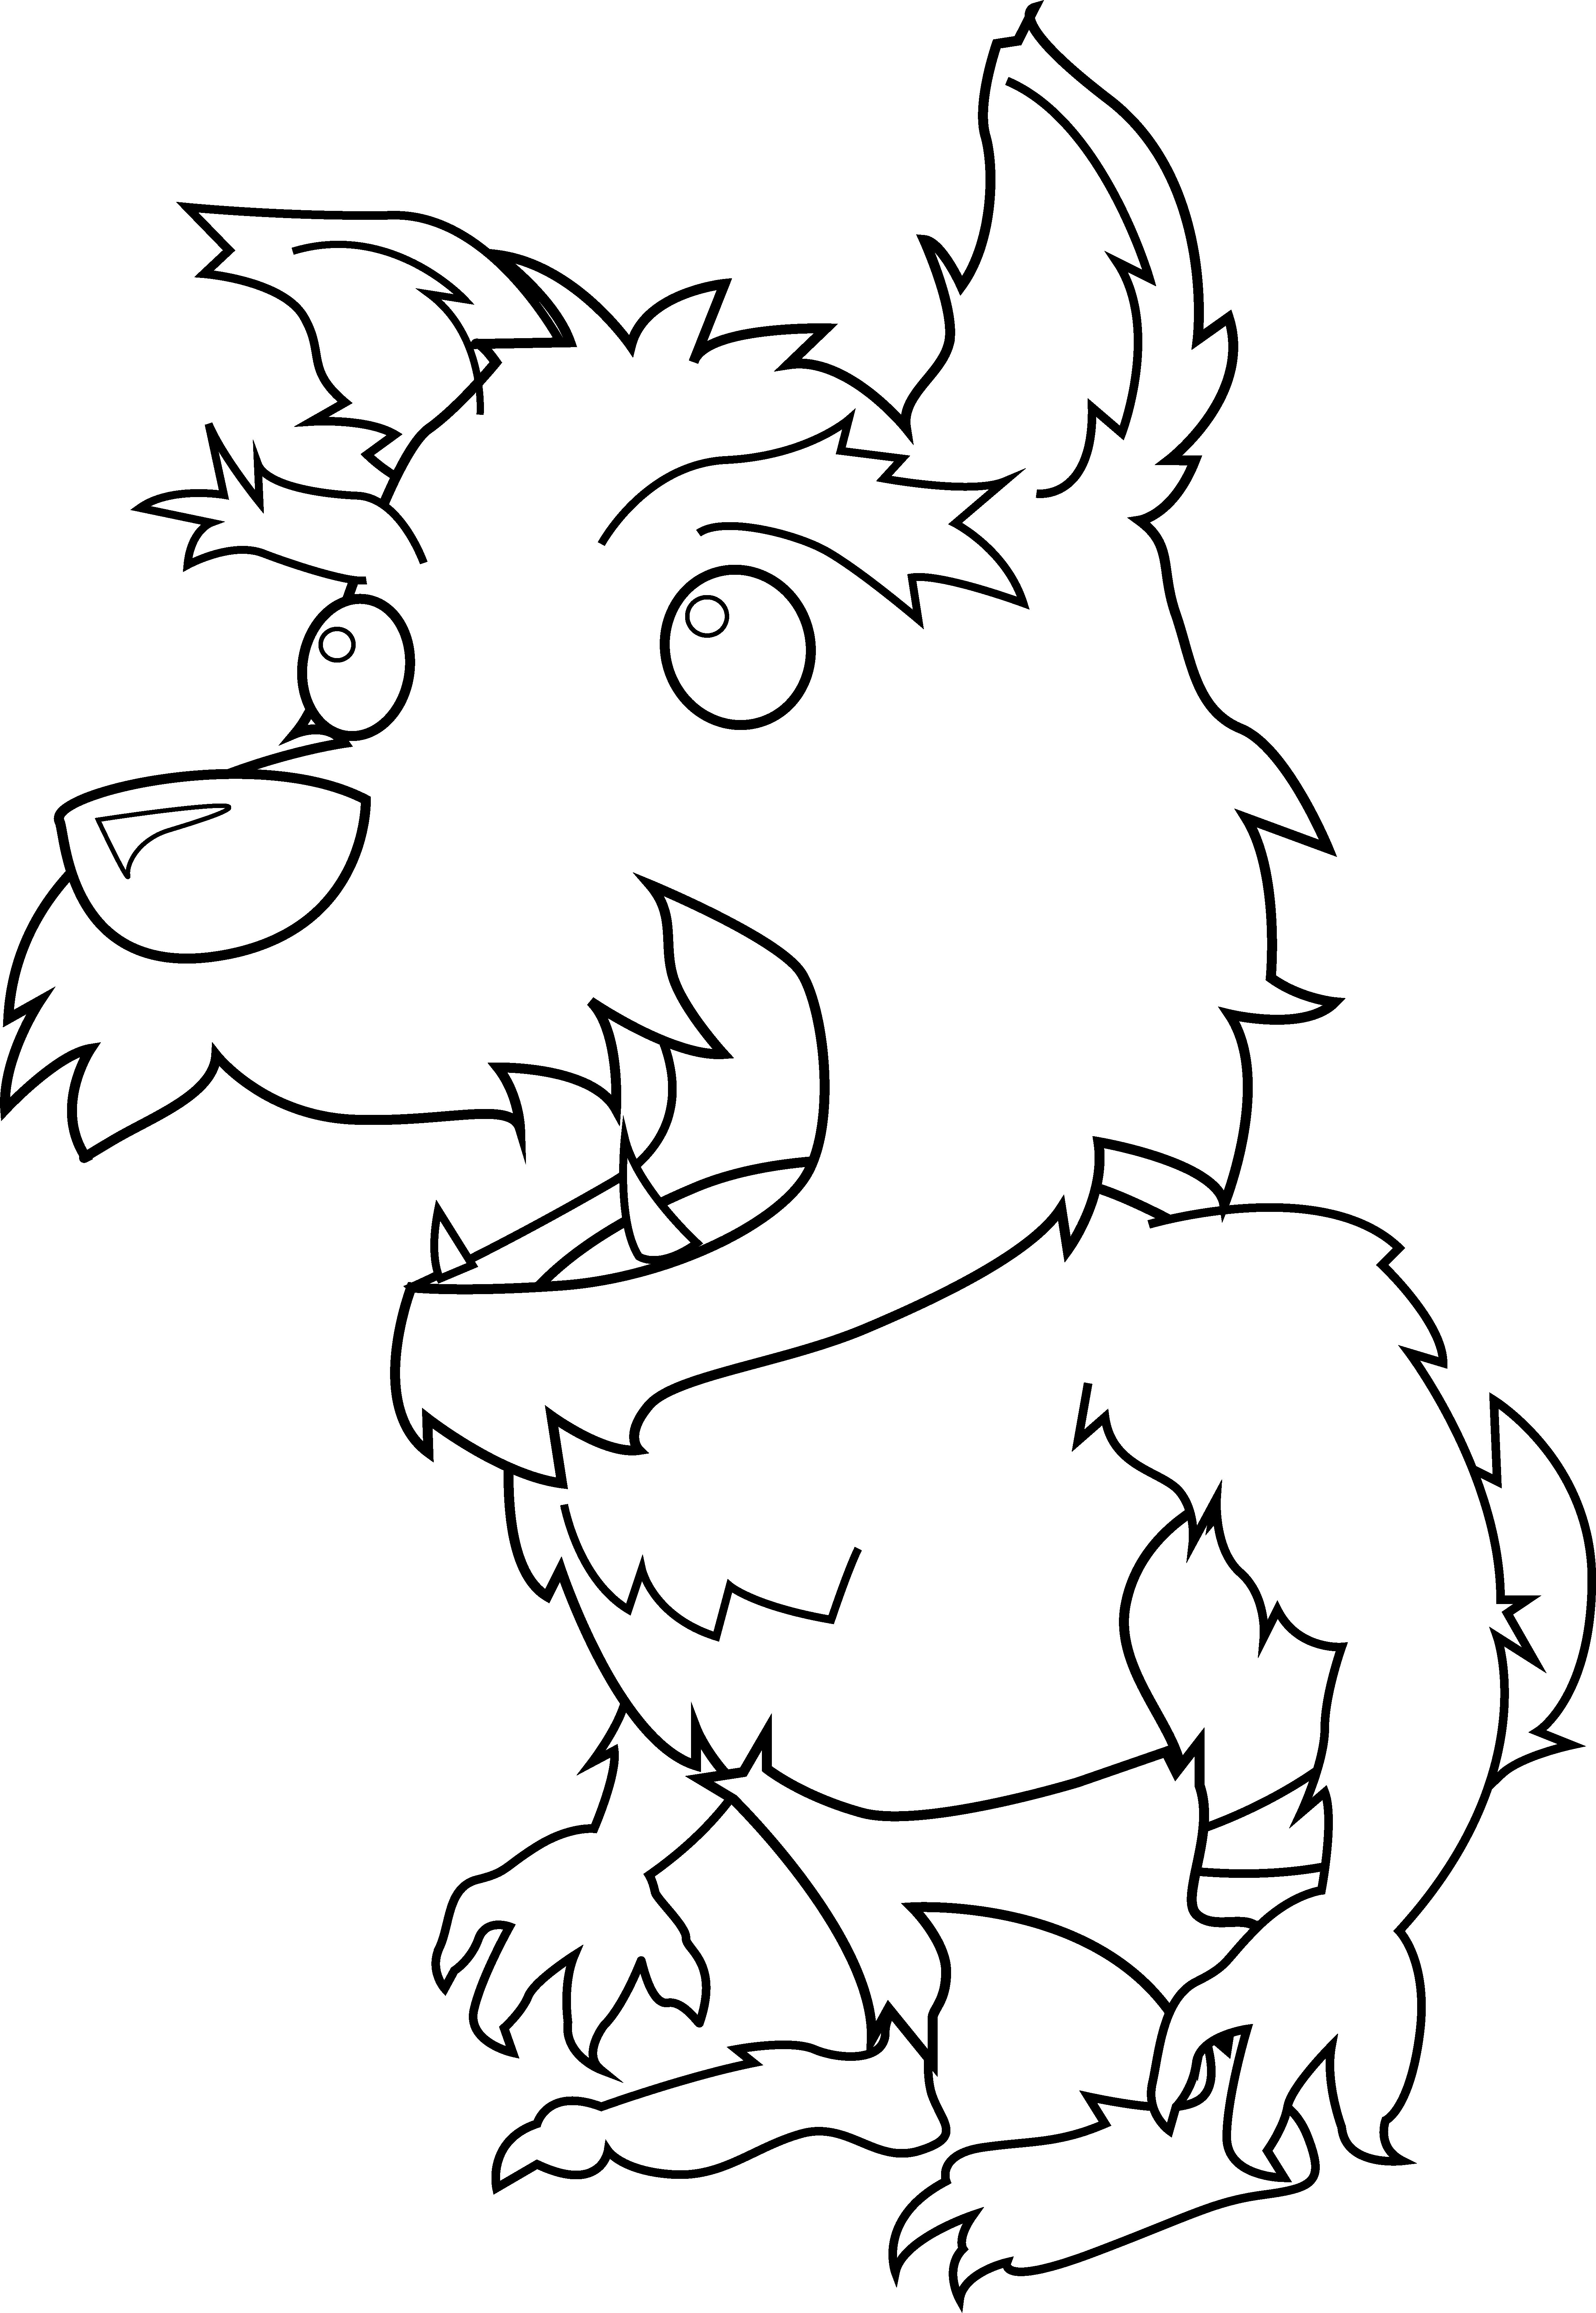 Scary Little Werewolf Coloring Page - Free Clip Art clip art royalty free library